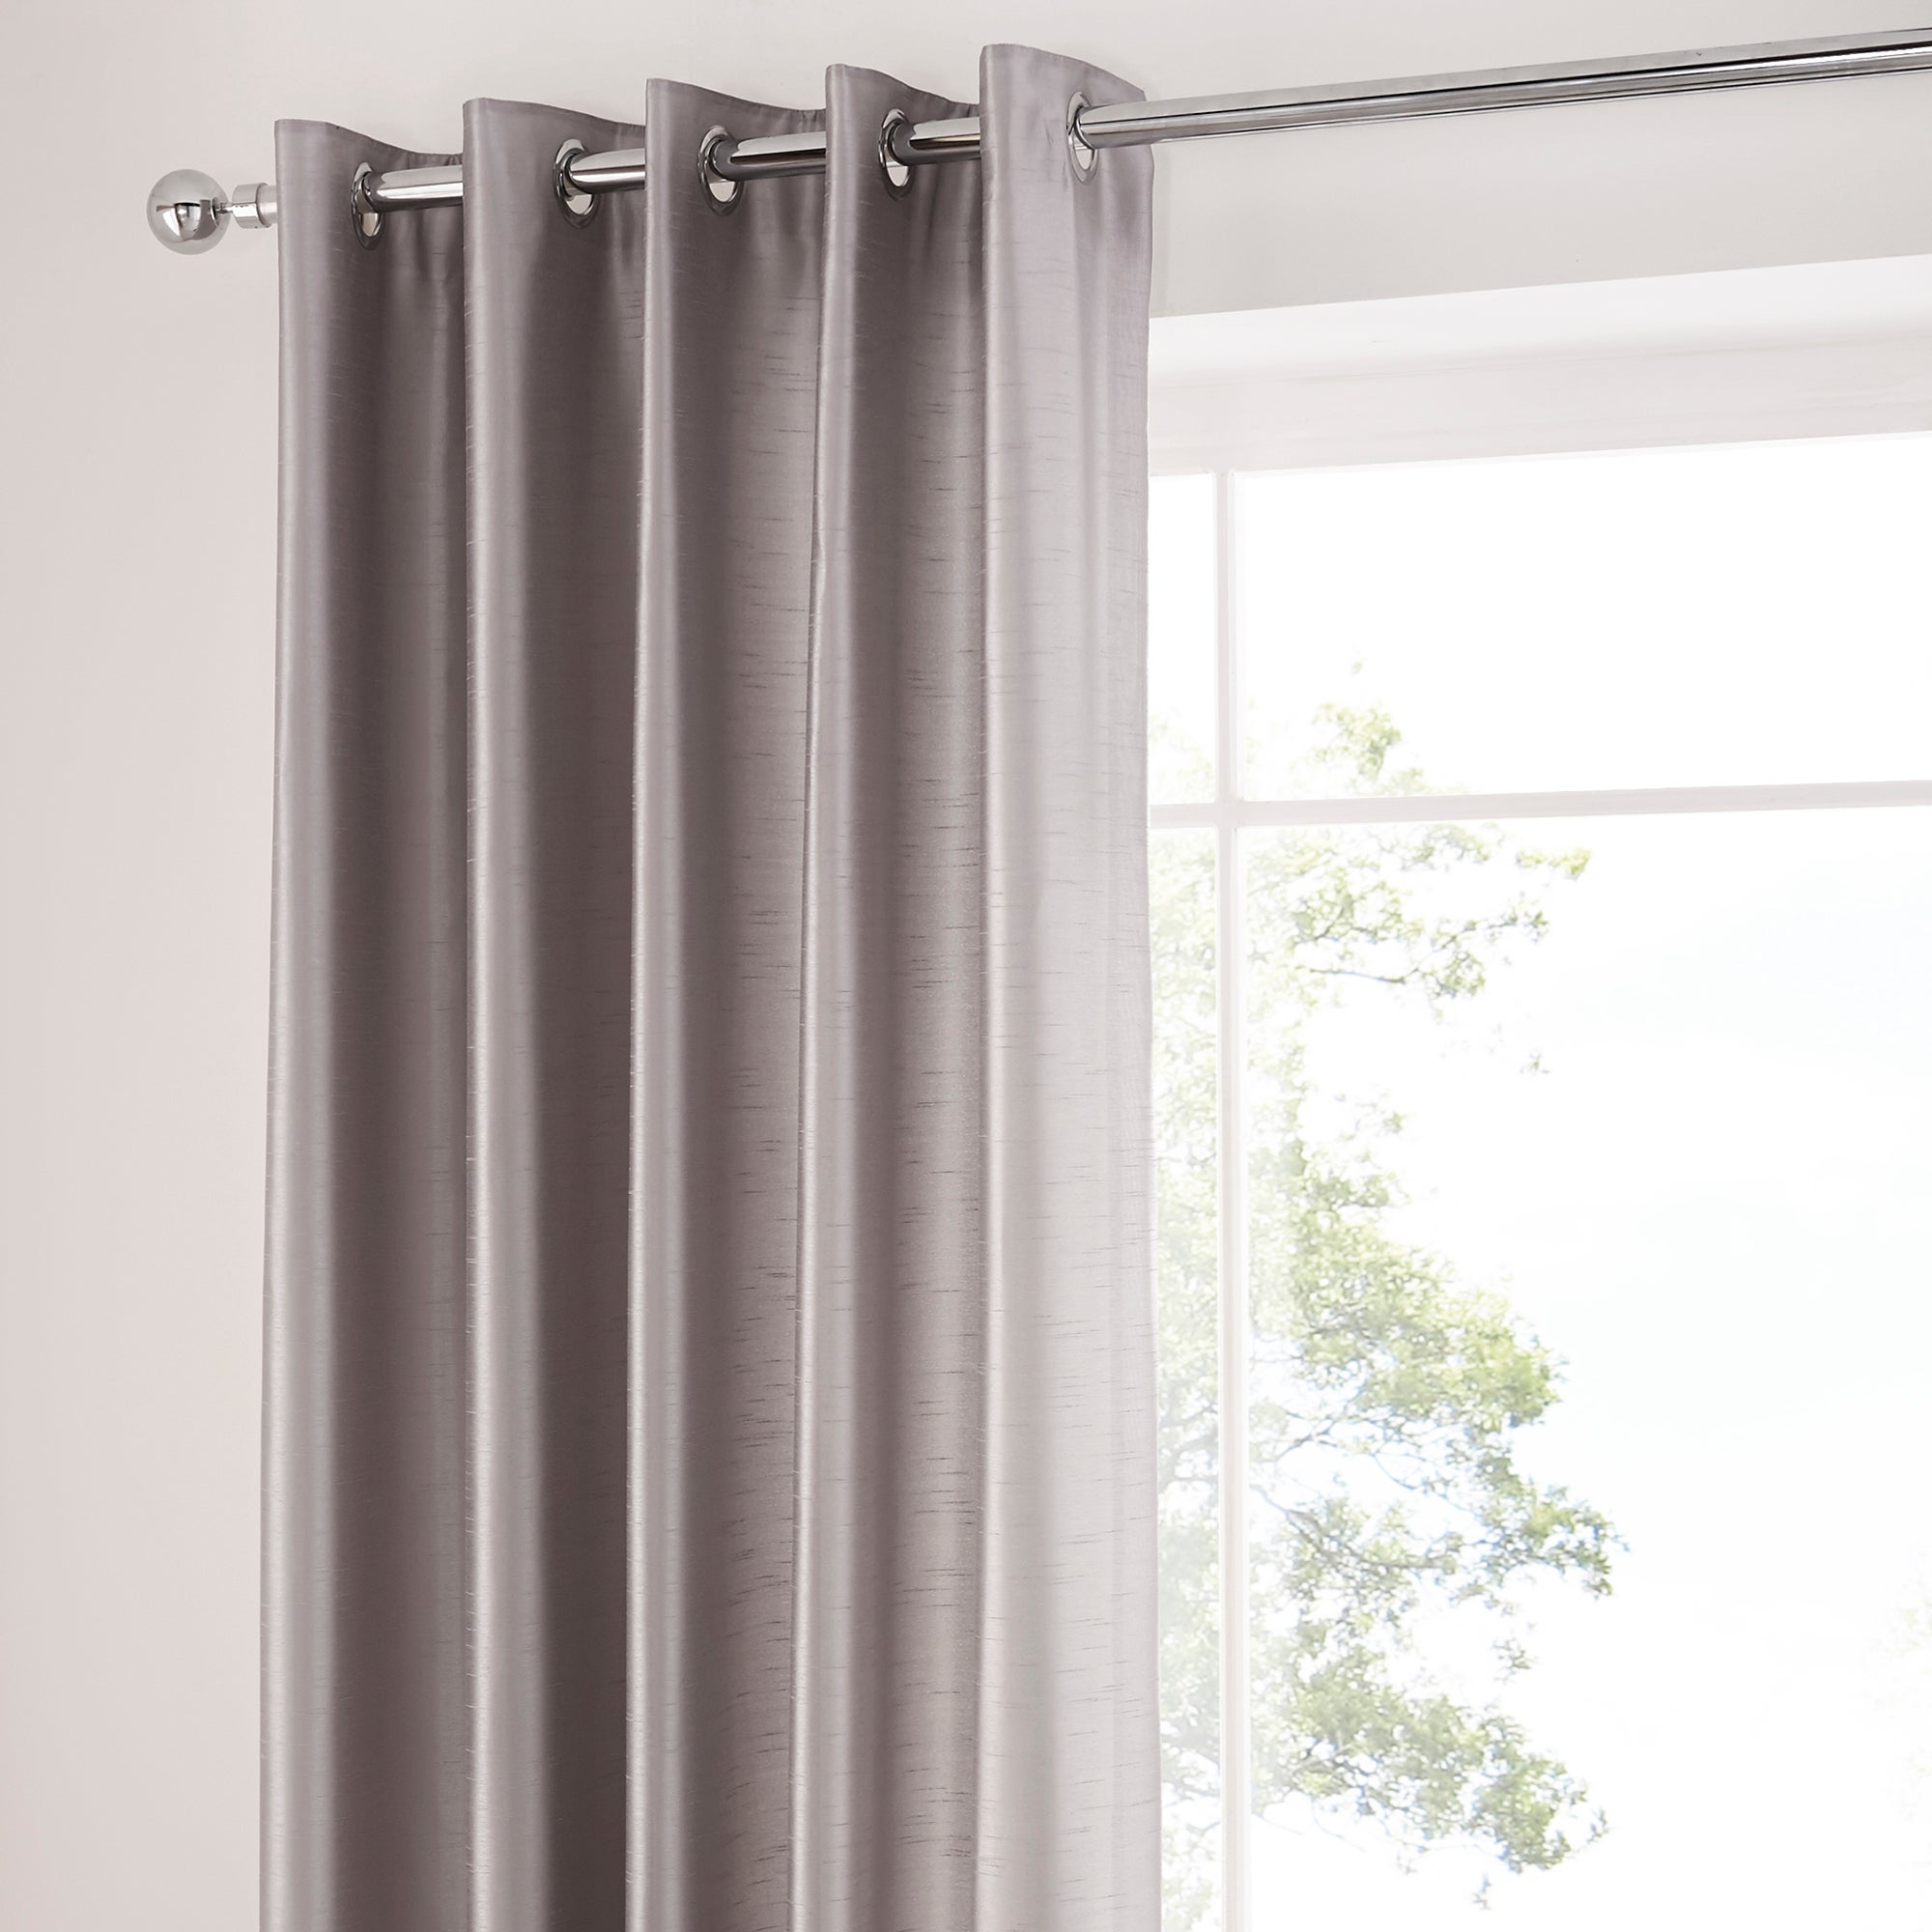 Silver Amber Thermal Eyelet Curtains